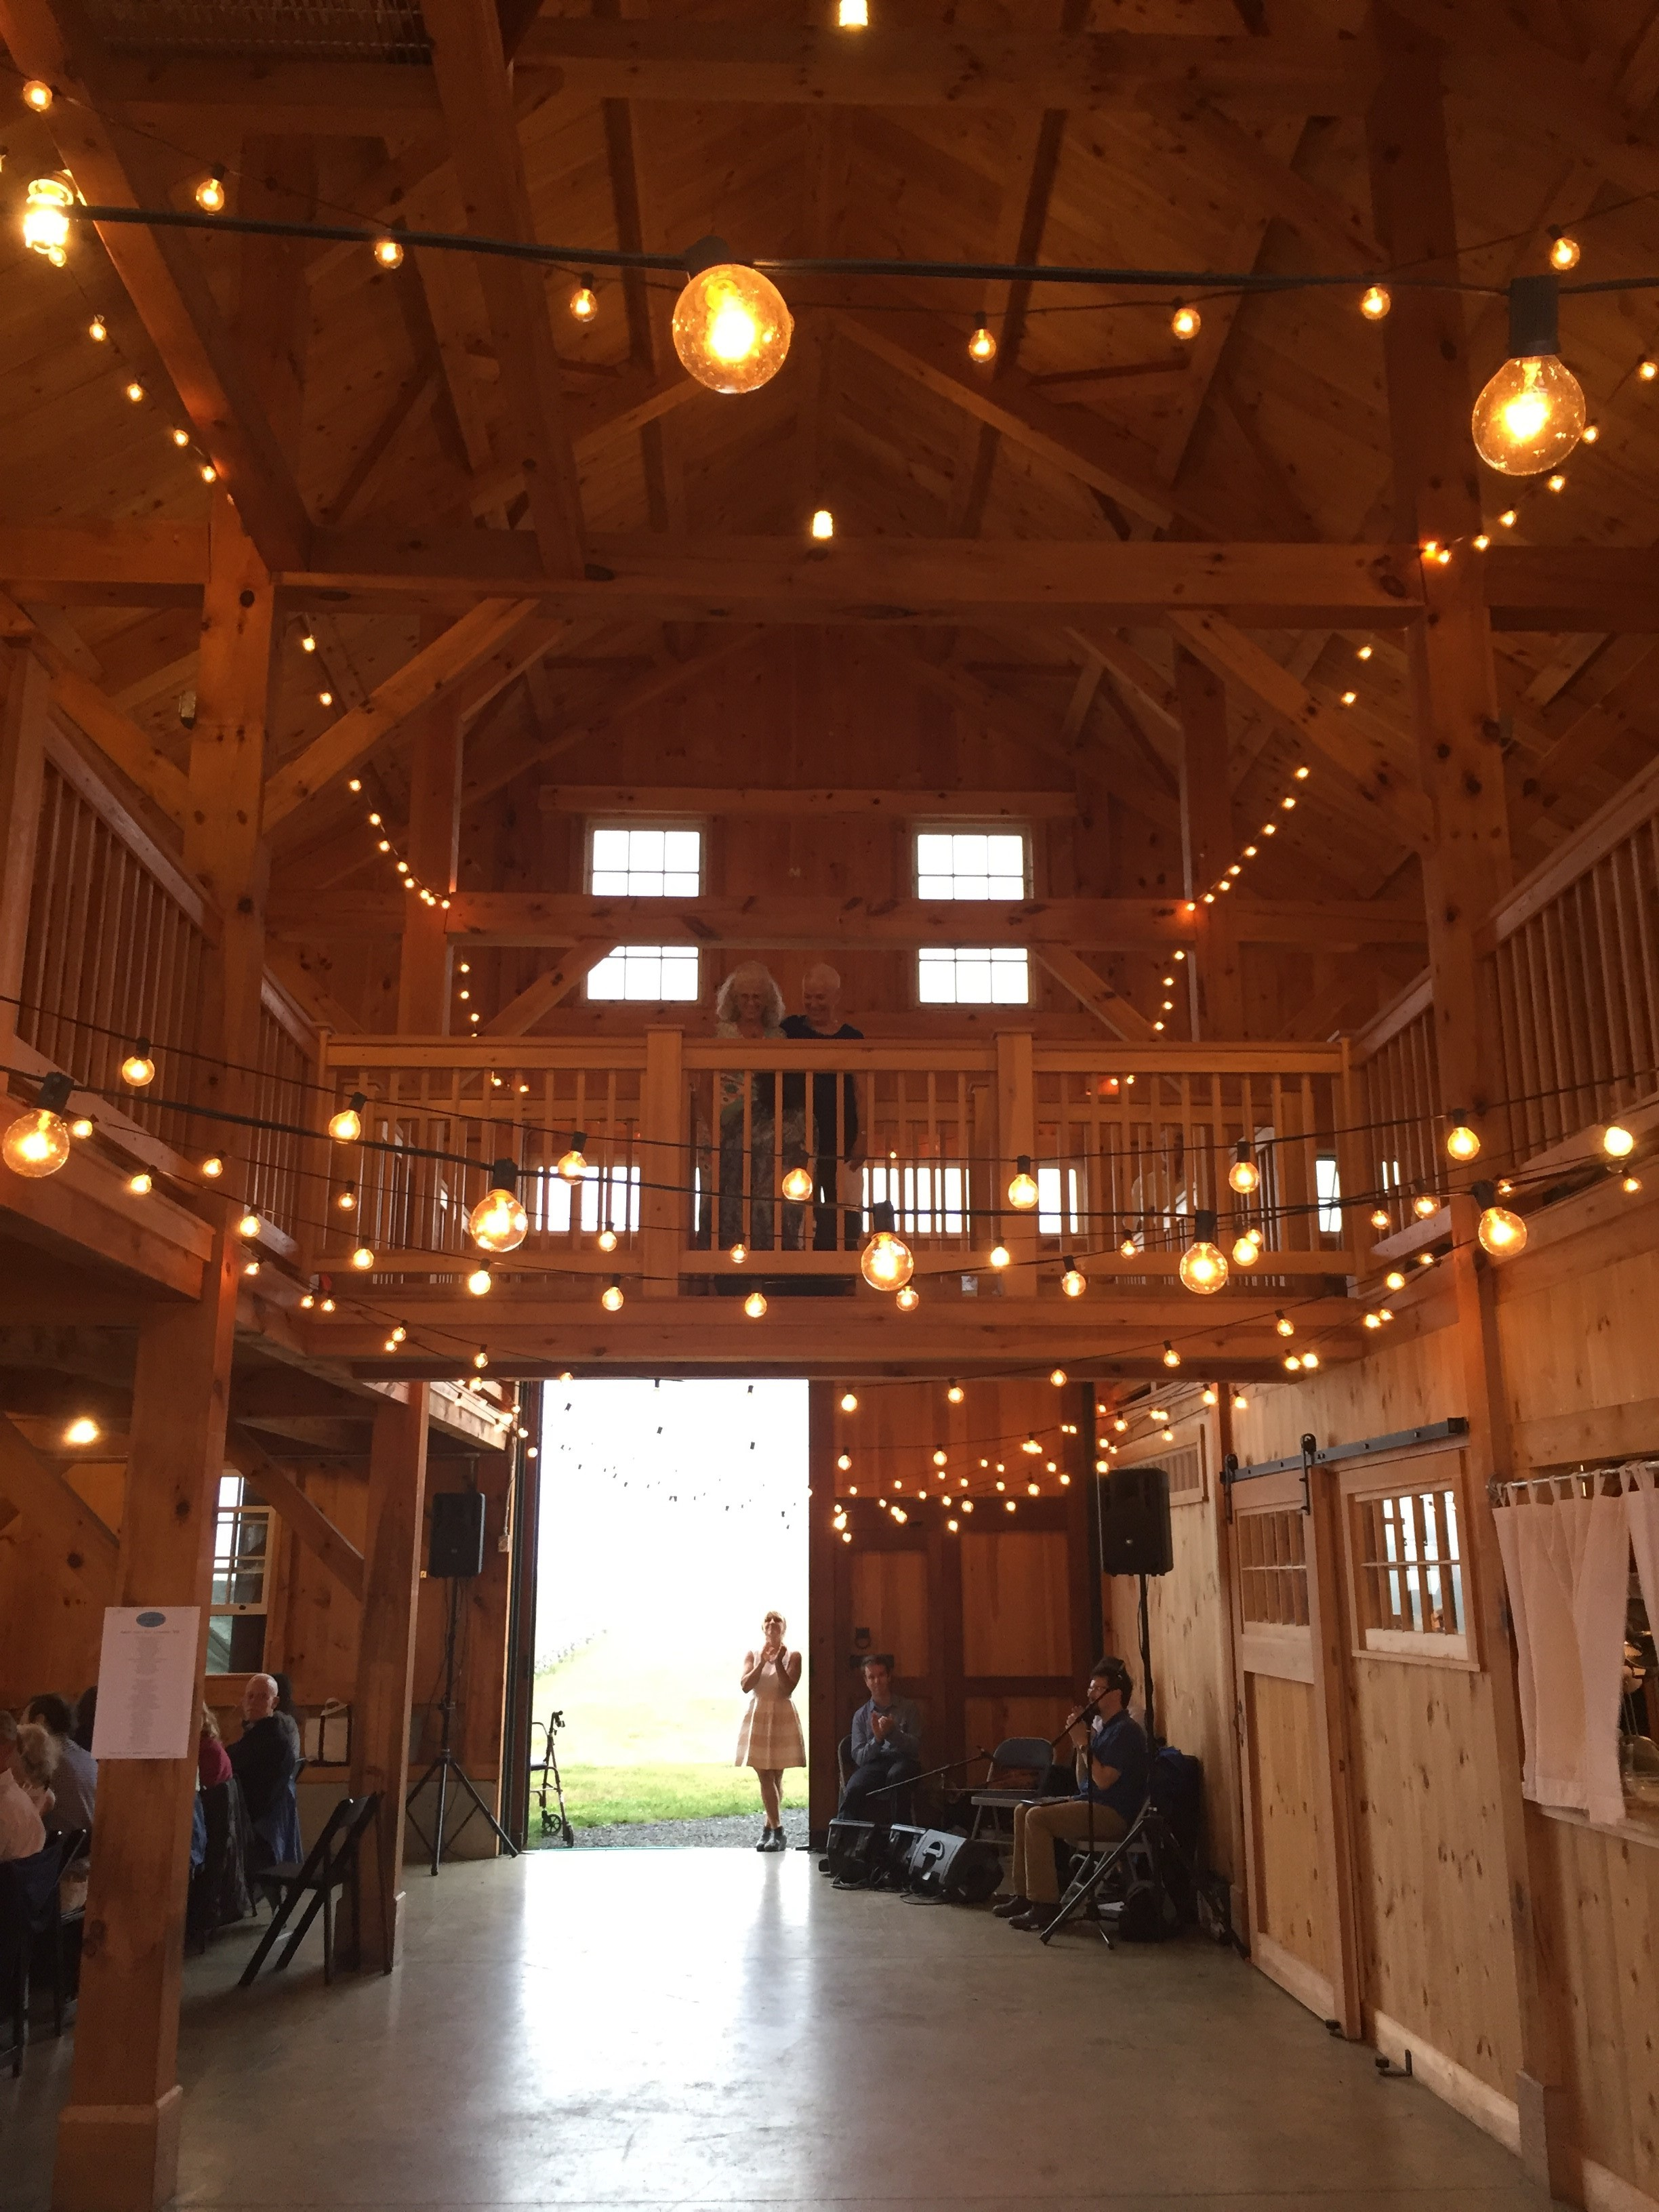 Summer Benefit Soiree @ Turner Farm Barn